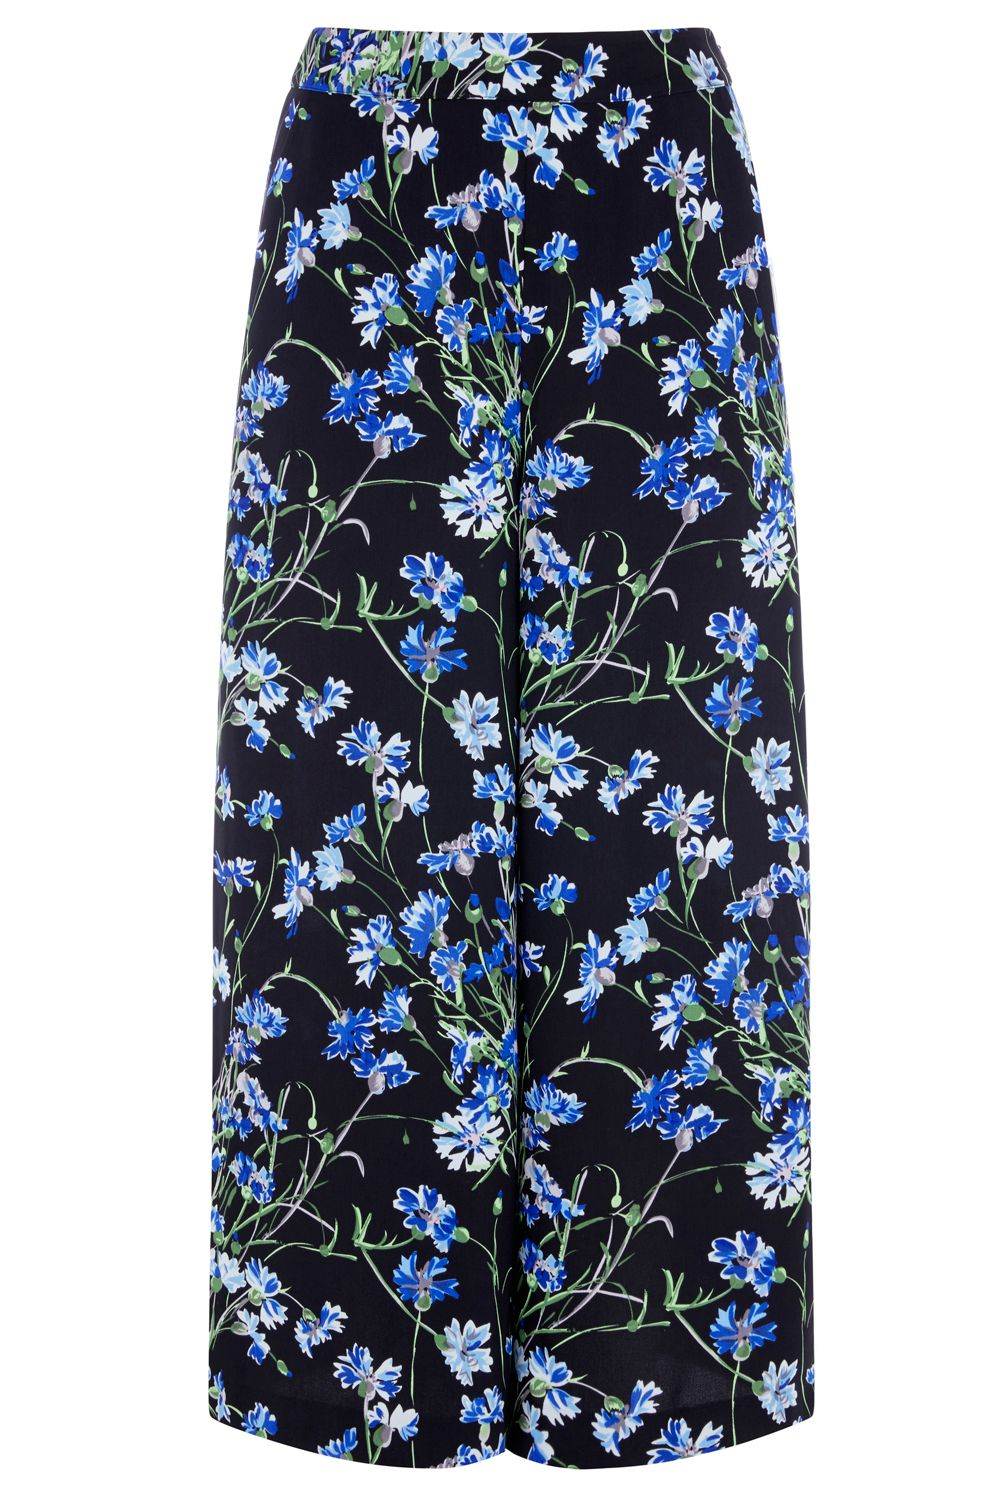 Warehouse Full Bloom Culottes, Black